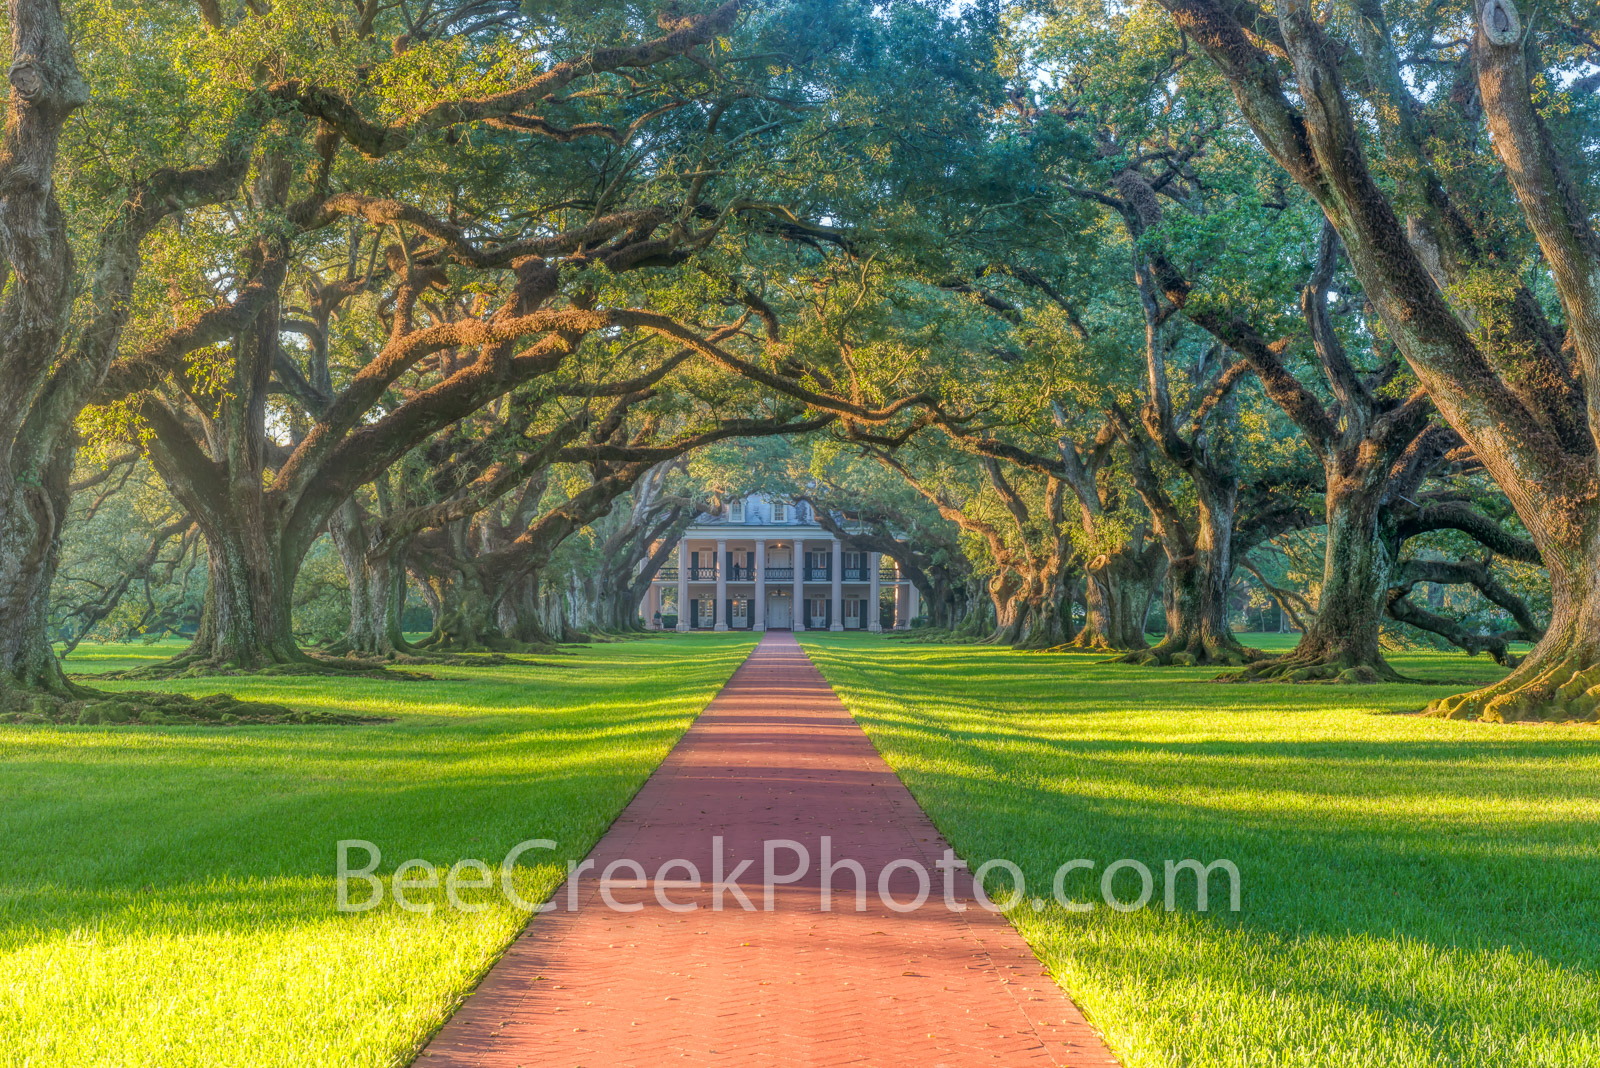 Lousiana, National Historic Landmark, Oak Alley Plantation, Sunrise, big house, canopy, landscape, landscapes, mansion, mississippi, oak trees, plantation, sidewalk, slaves, sugar cane, photo